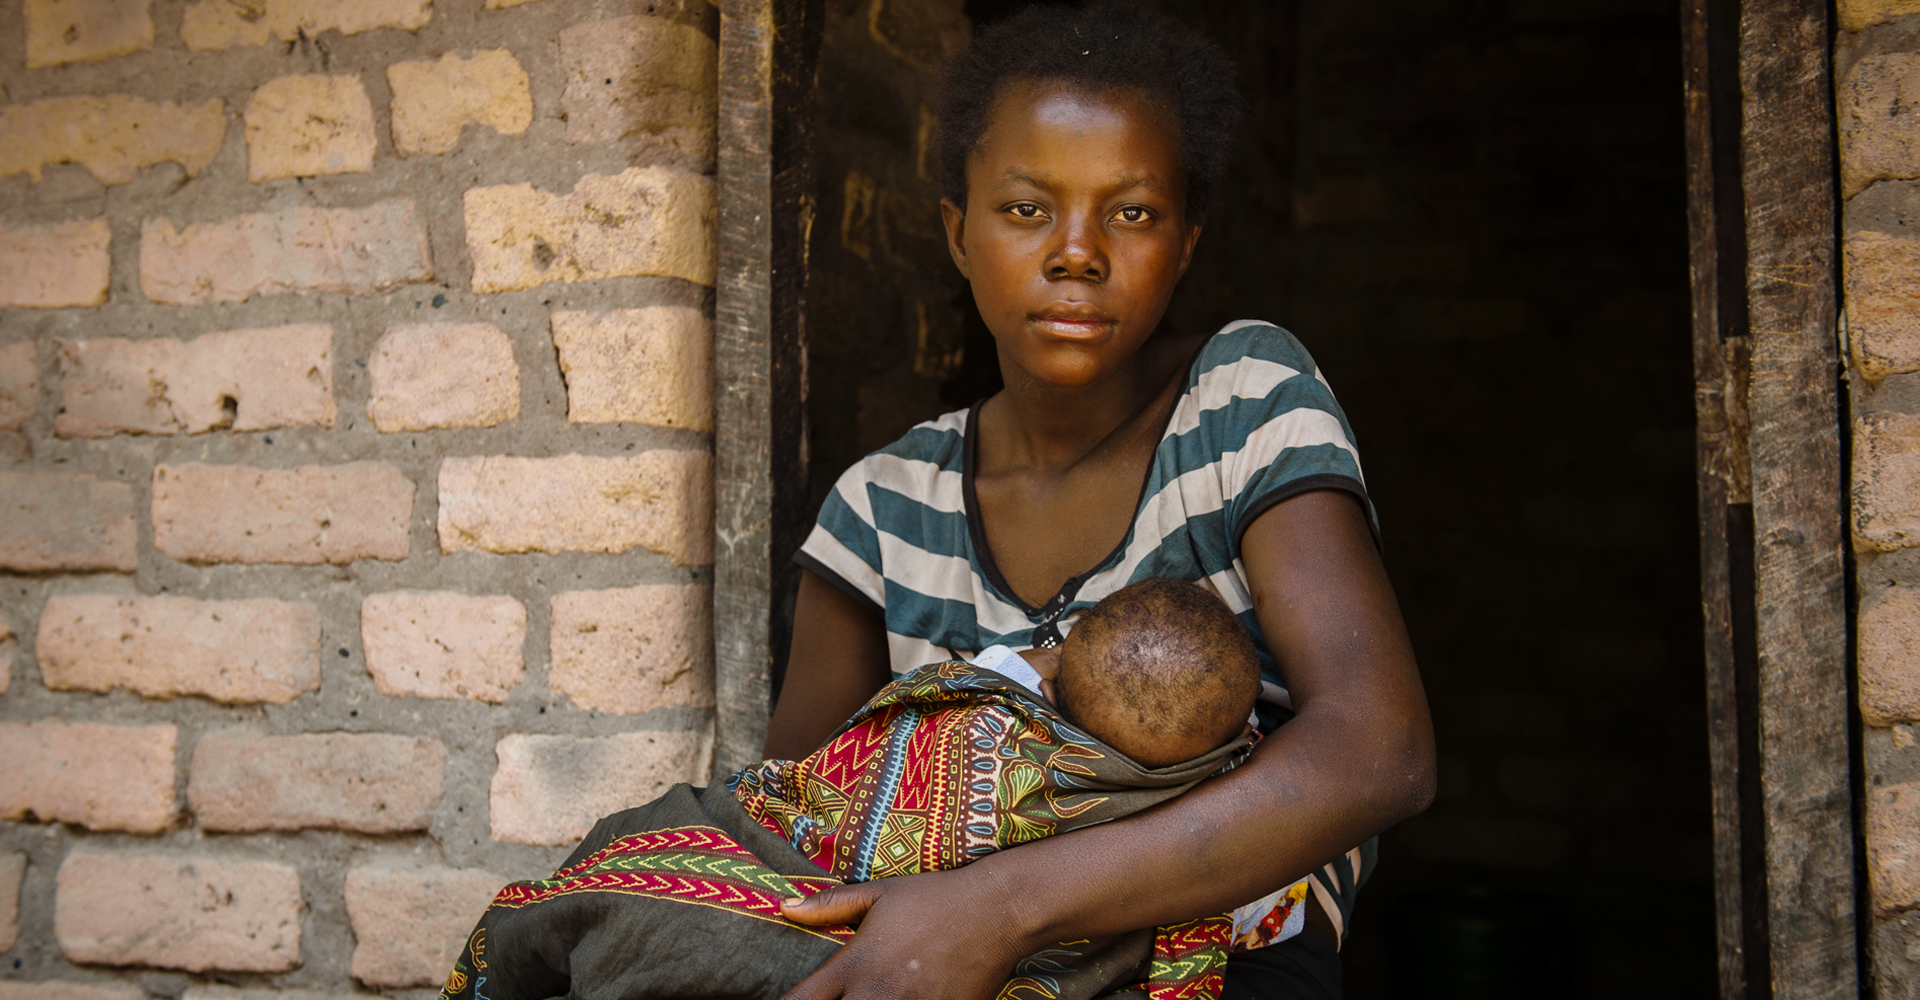 Mary (not her real name), 15, was a child bride. Now she is a widow and single mother. (Photo: Eliza Powell/Camfed)